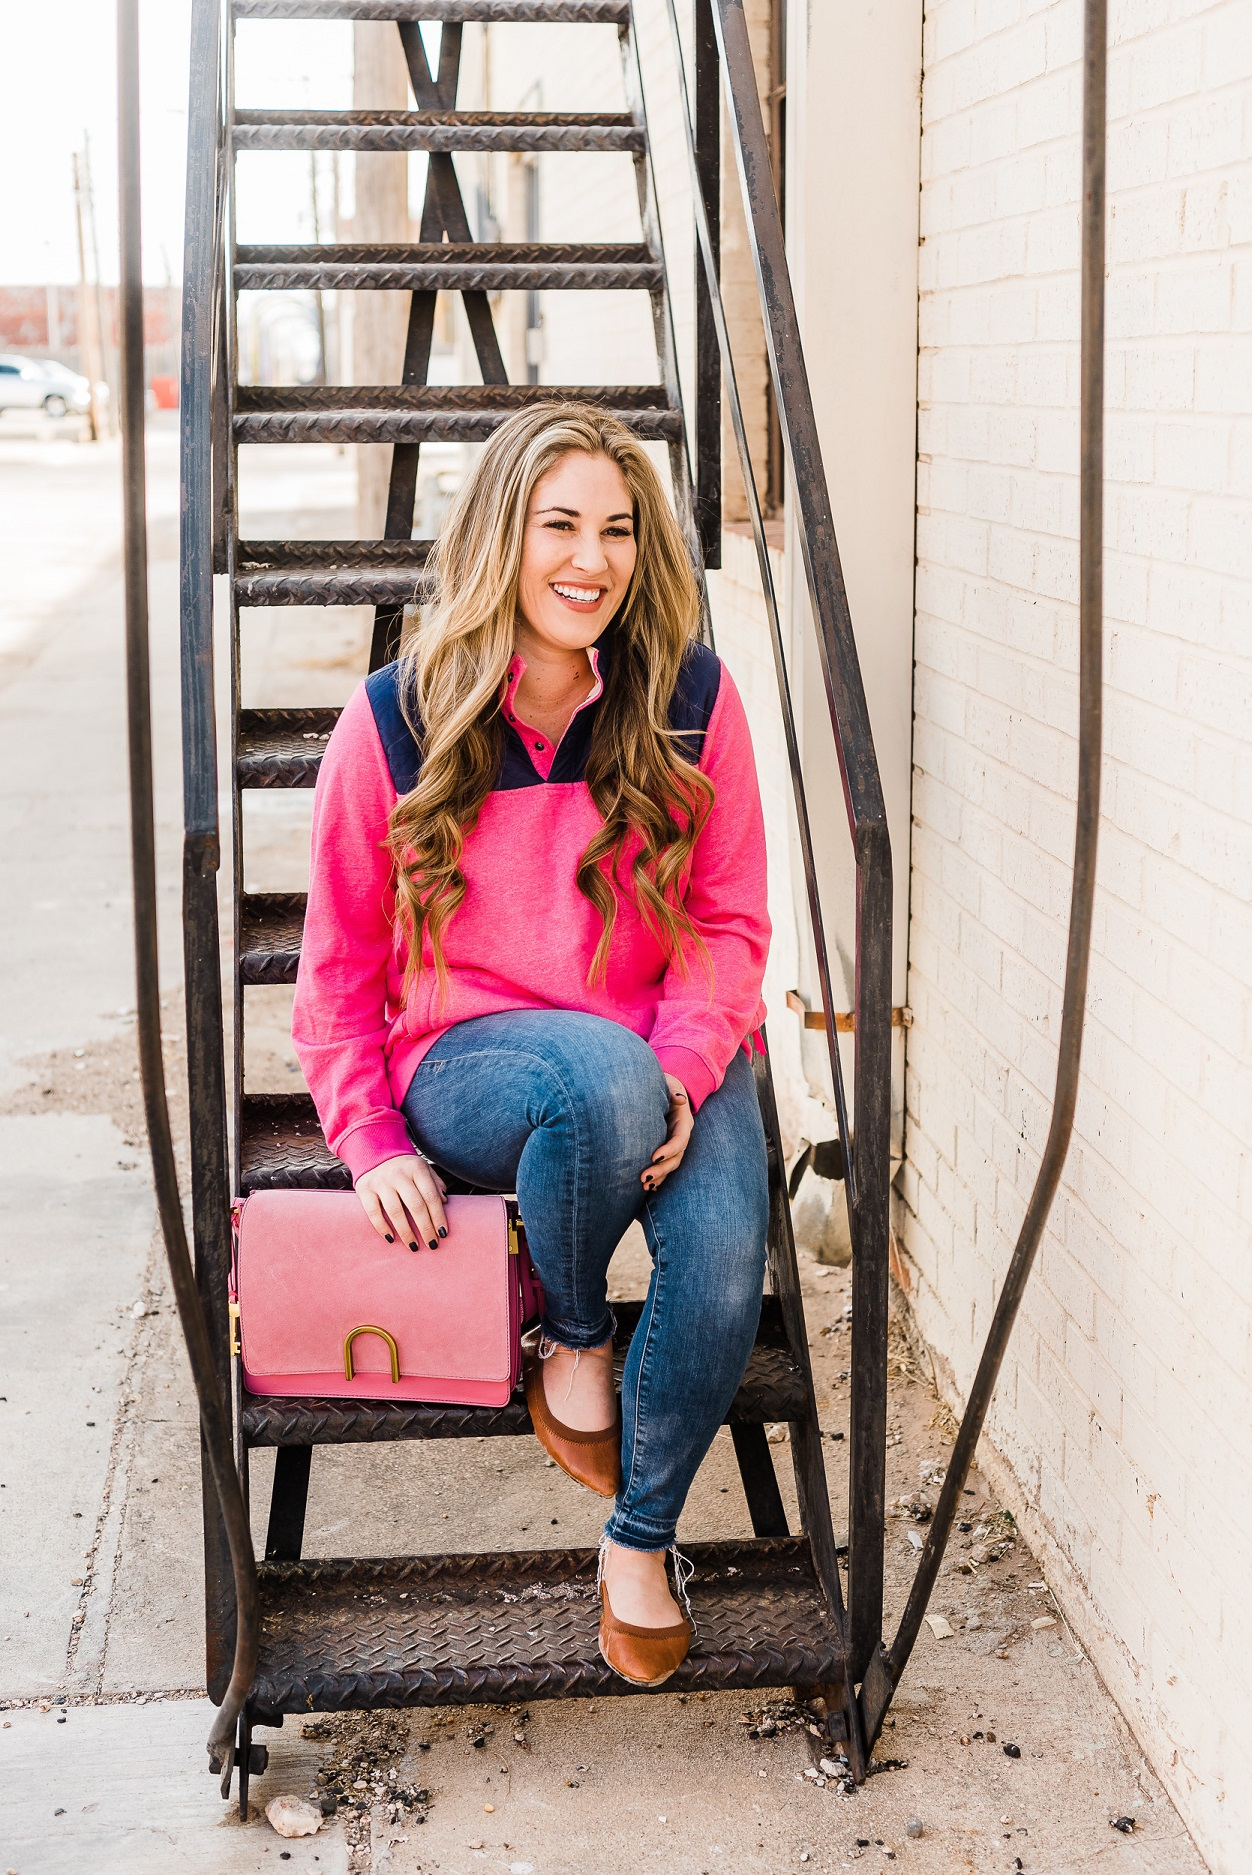 Nordstrom Pink Pullover outfit from East Memphis fashion blogger Walking in Memphis in High Heels